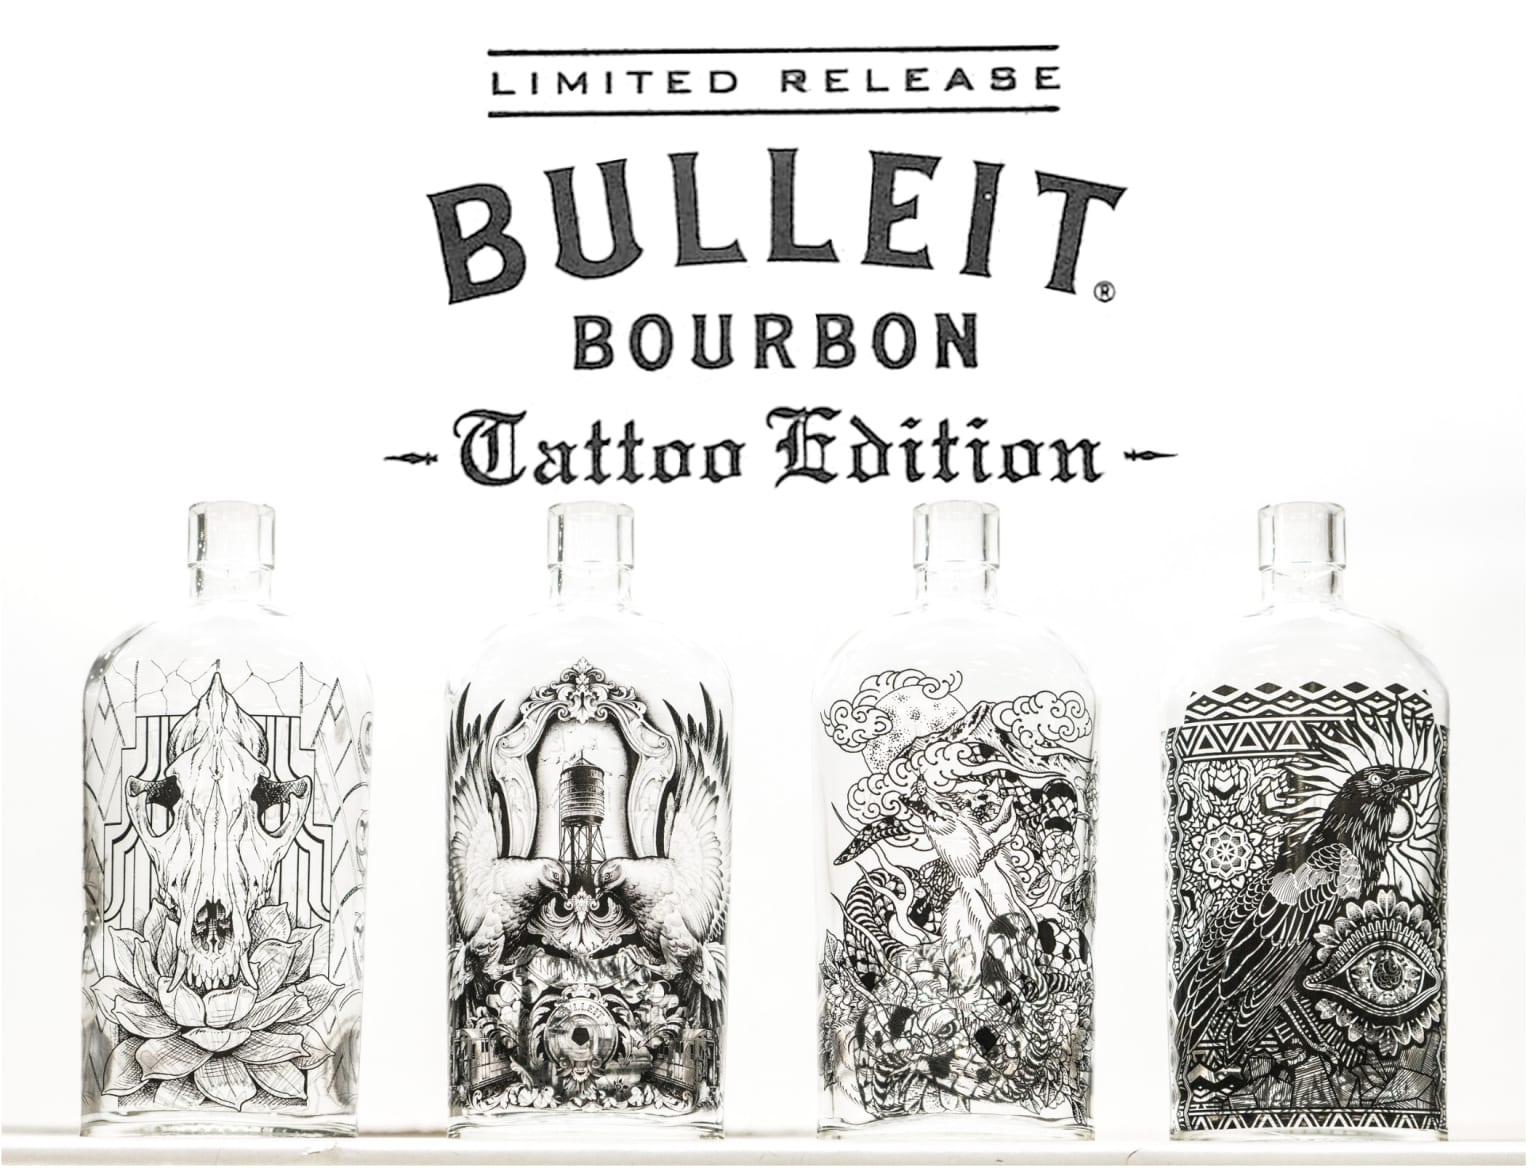 BULLEIT TATTOO EDITION